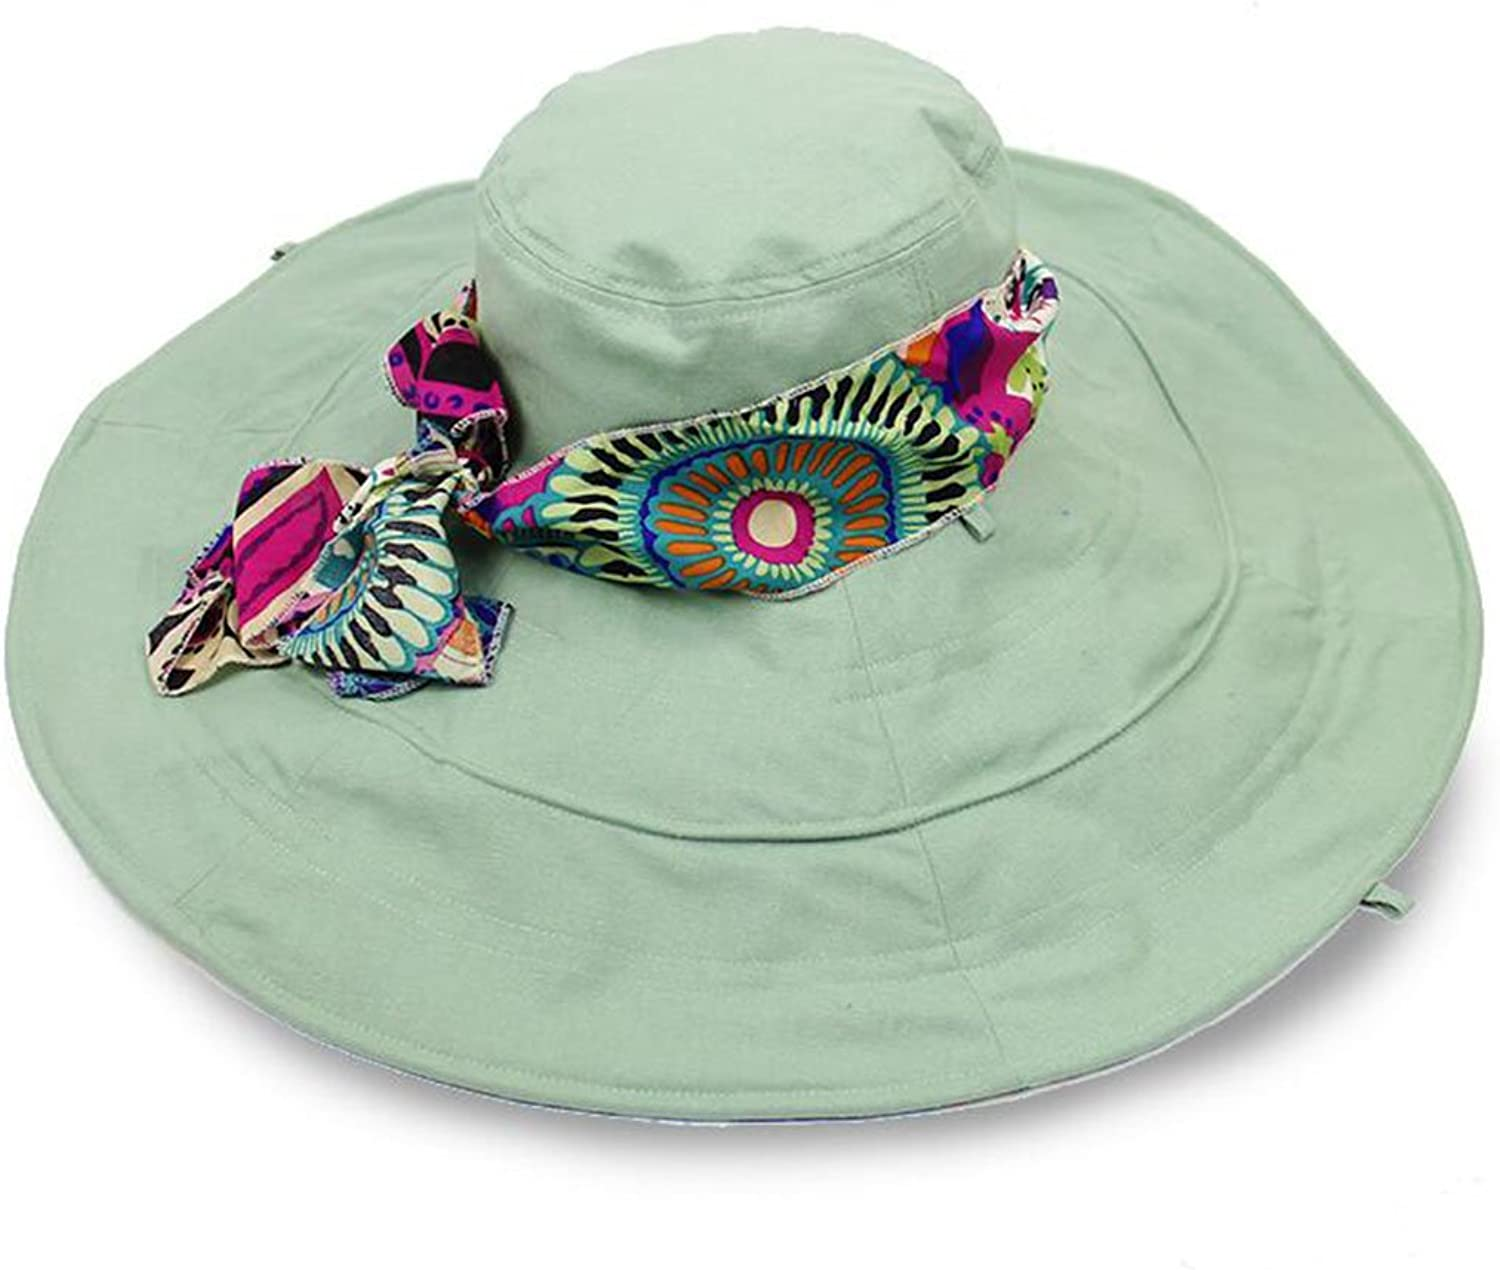 QZ Home Visor Big Hat Sunhat Hat Ms Outdoor Travel Collapsible Summer Beach Hat (color   Pink Green)